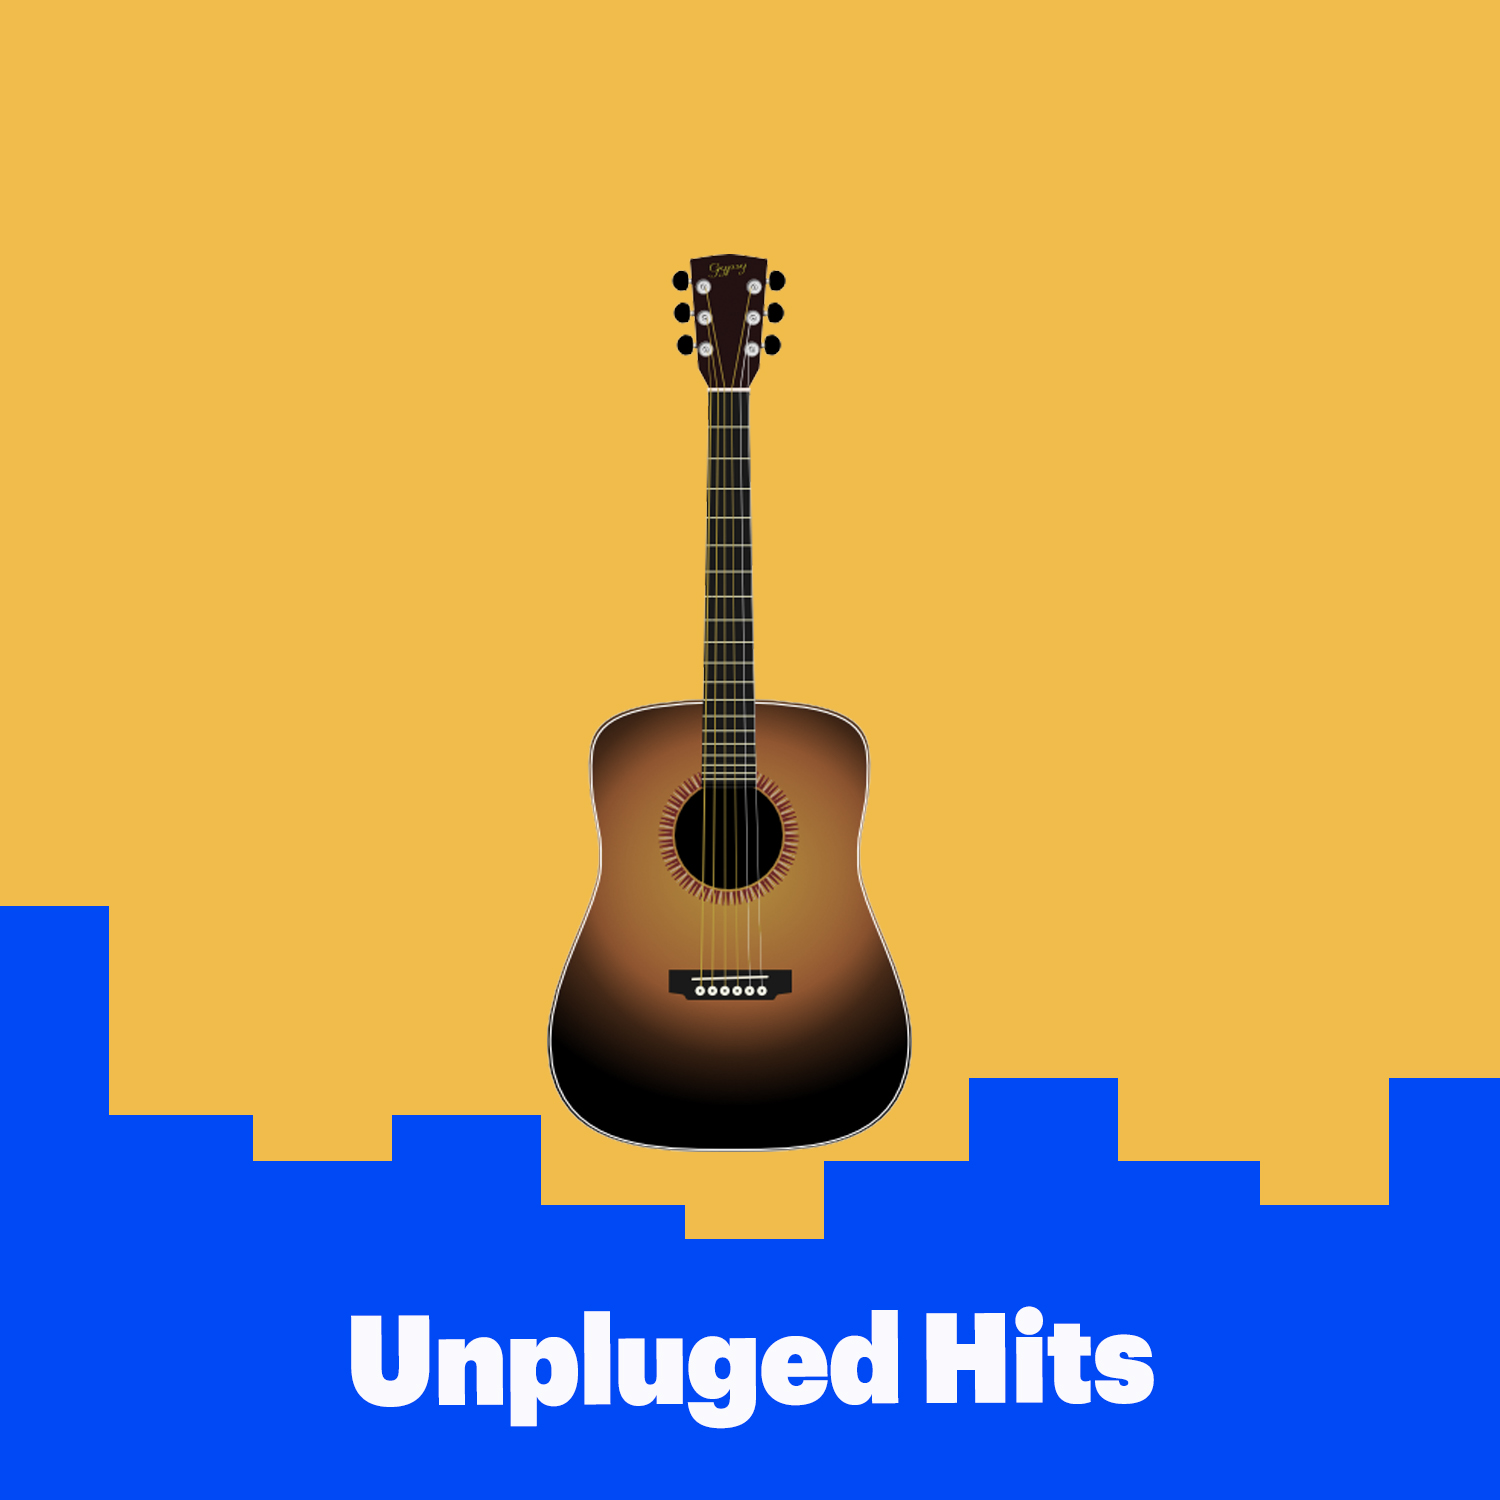 Unplugged Hits